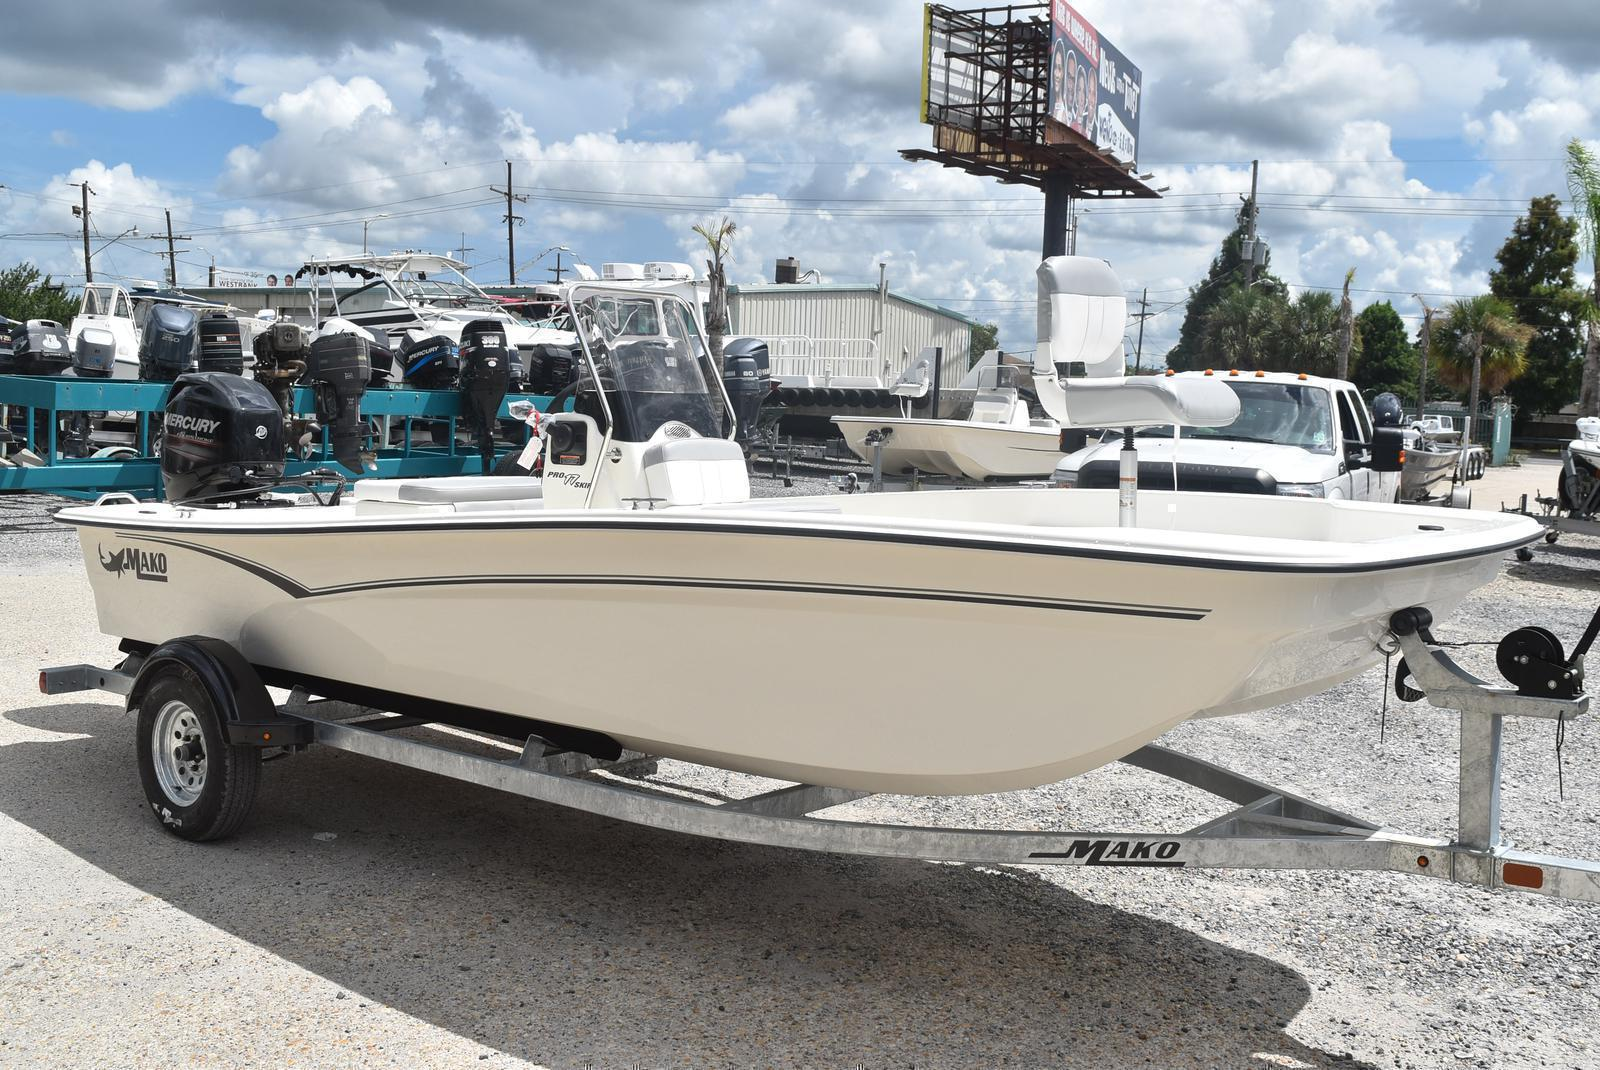 2020 Mako boat for sale, model of the boat is Pro Skiff 17, 75 ELPT & Image # 667 of 702